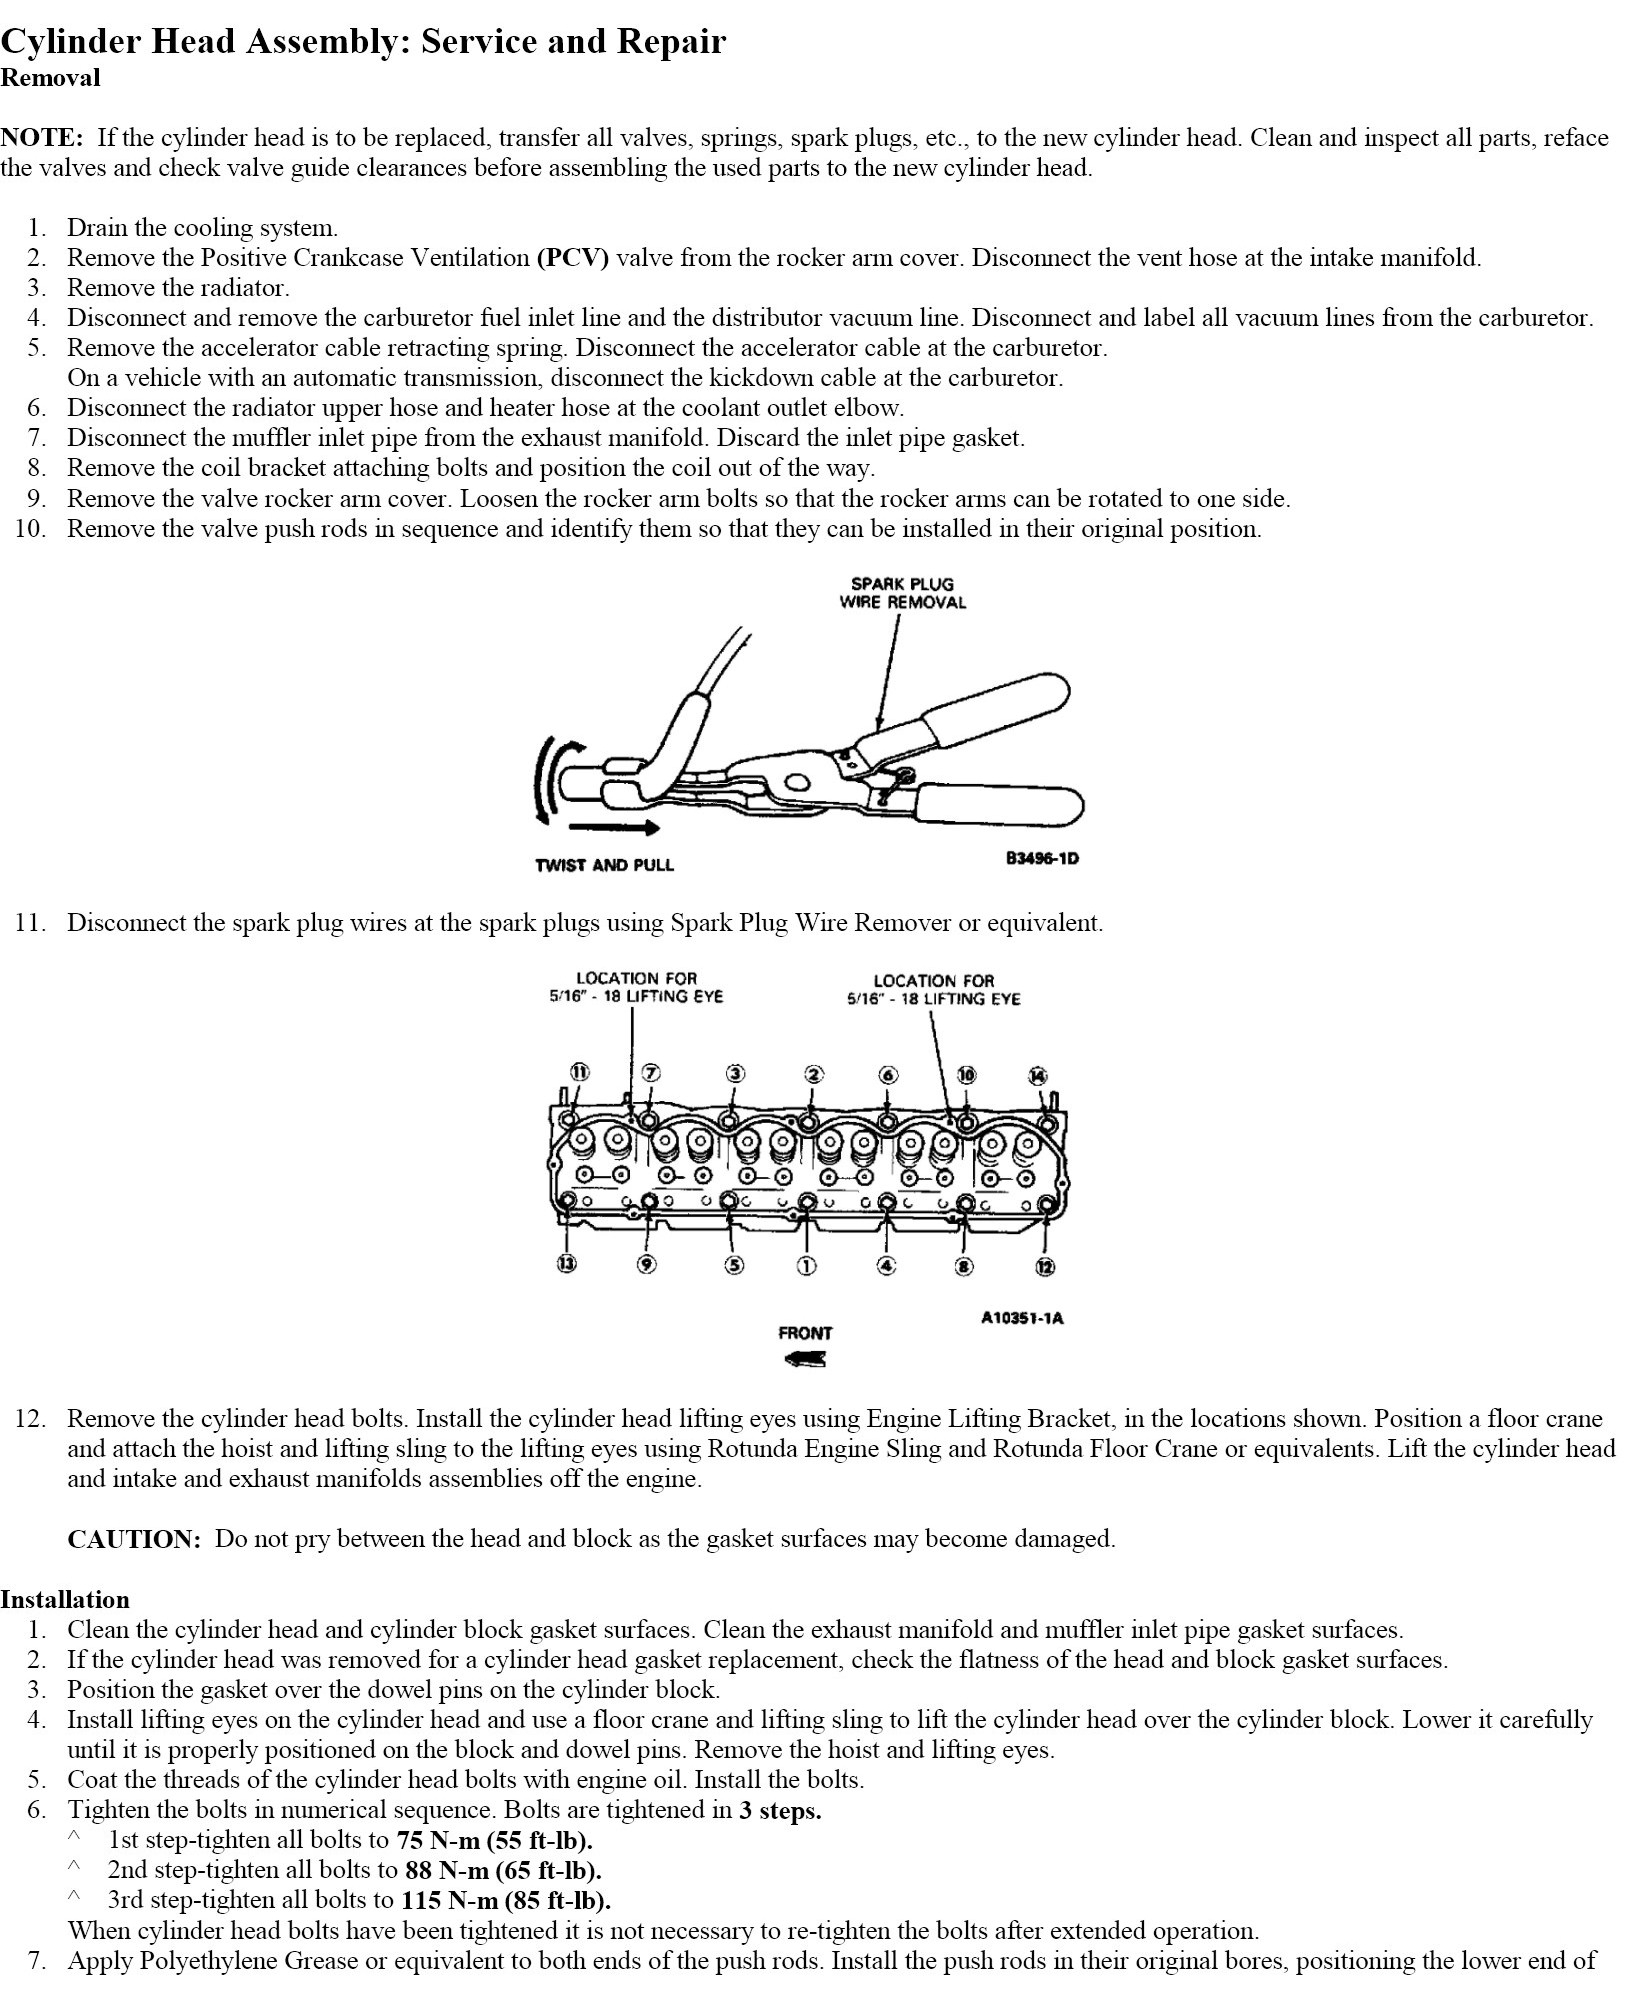 Torque specs and tightening sequence for 1983 Ford f250 300-6 engine